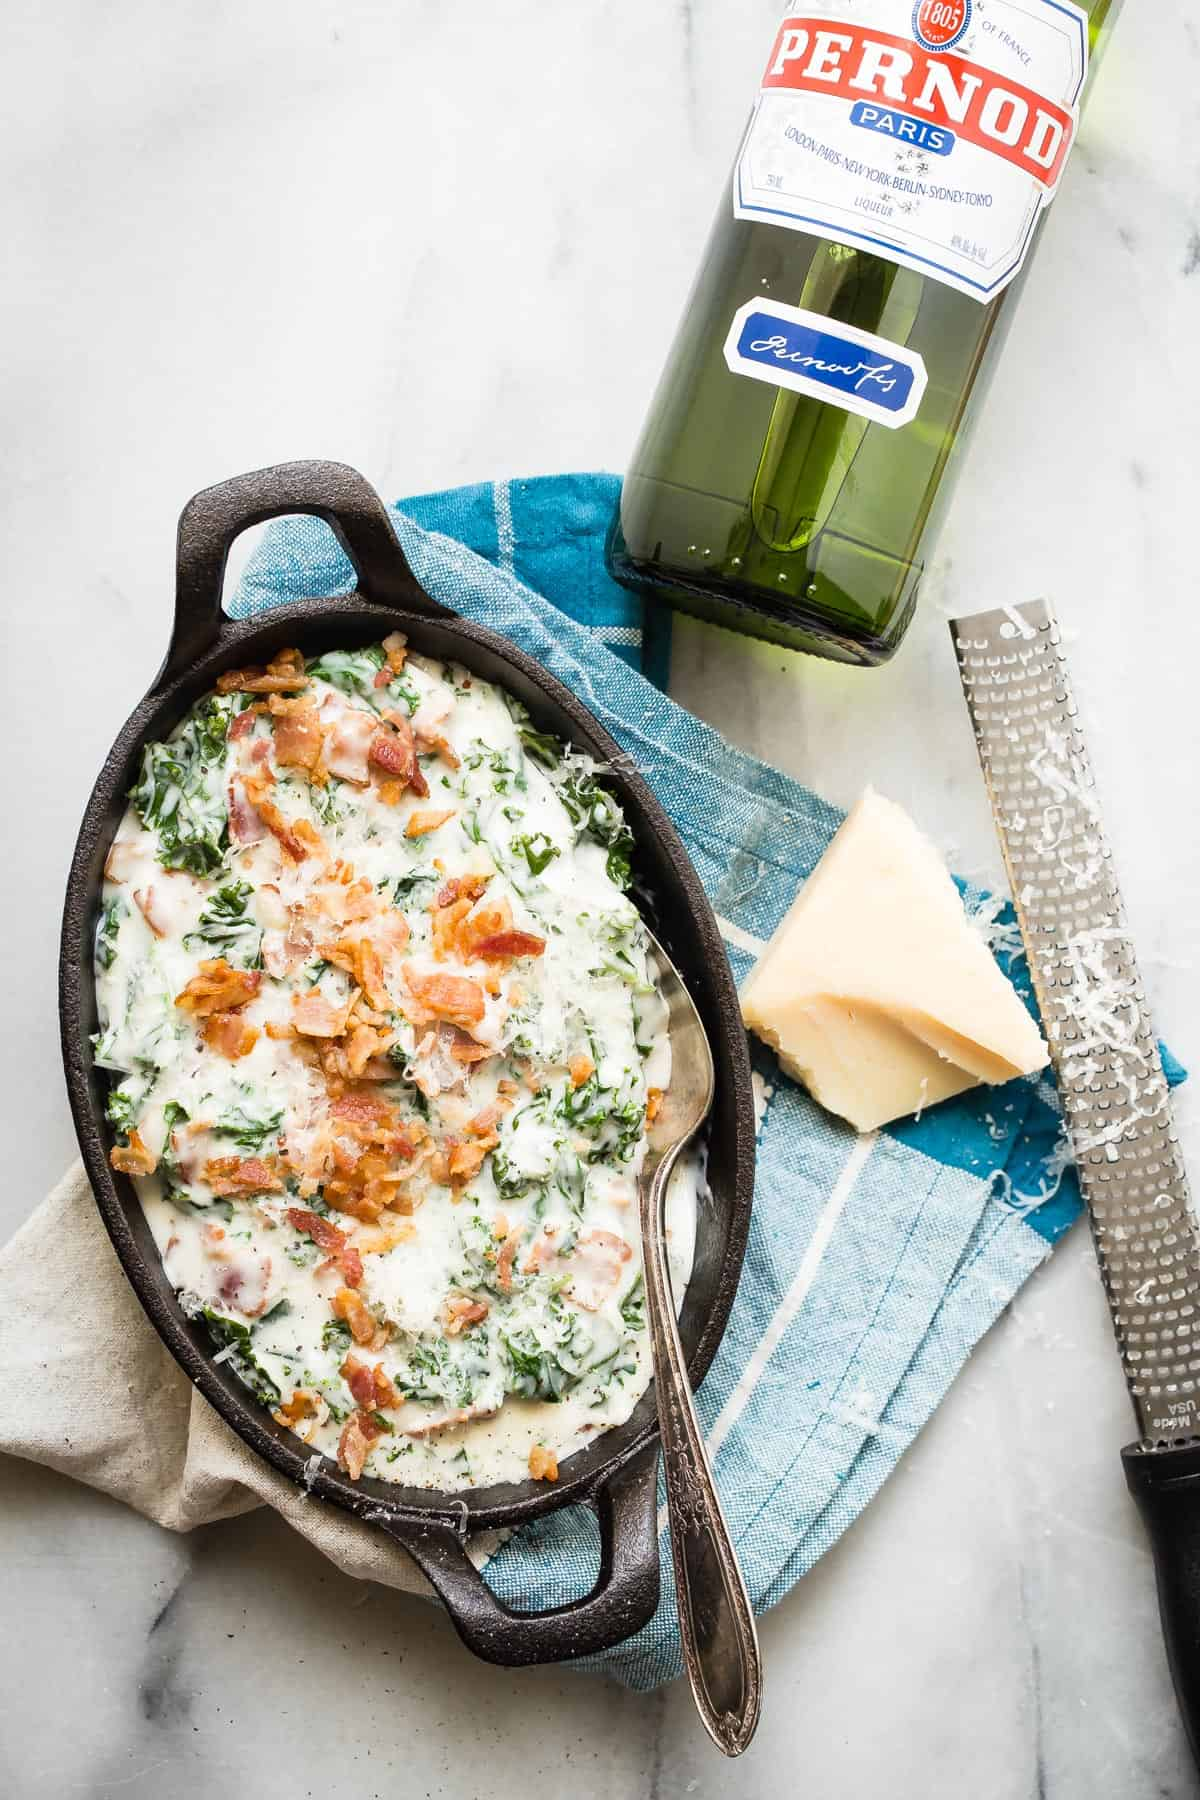 This Creamed Kale with Bacon and Parmesan cheese will easily make you forget about using spinach. Creamy with crunchy chunks of smoky bacon, this is a must-have side dish for the holidays!